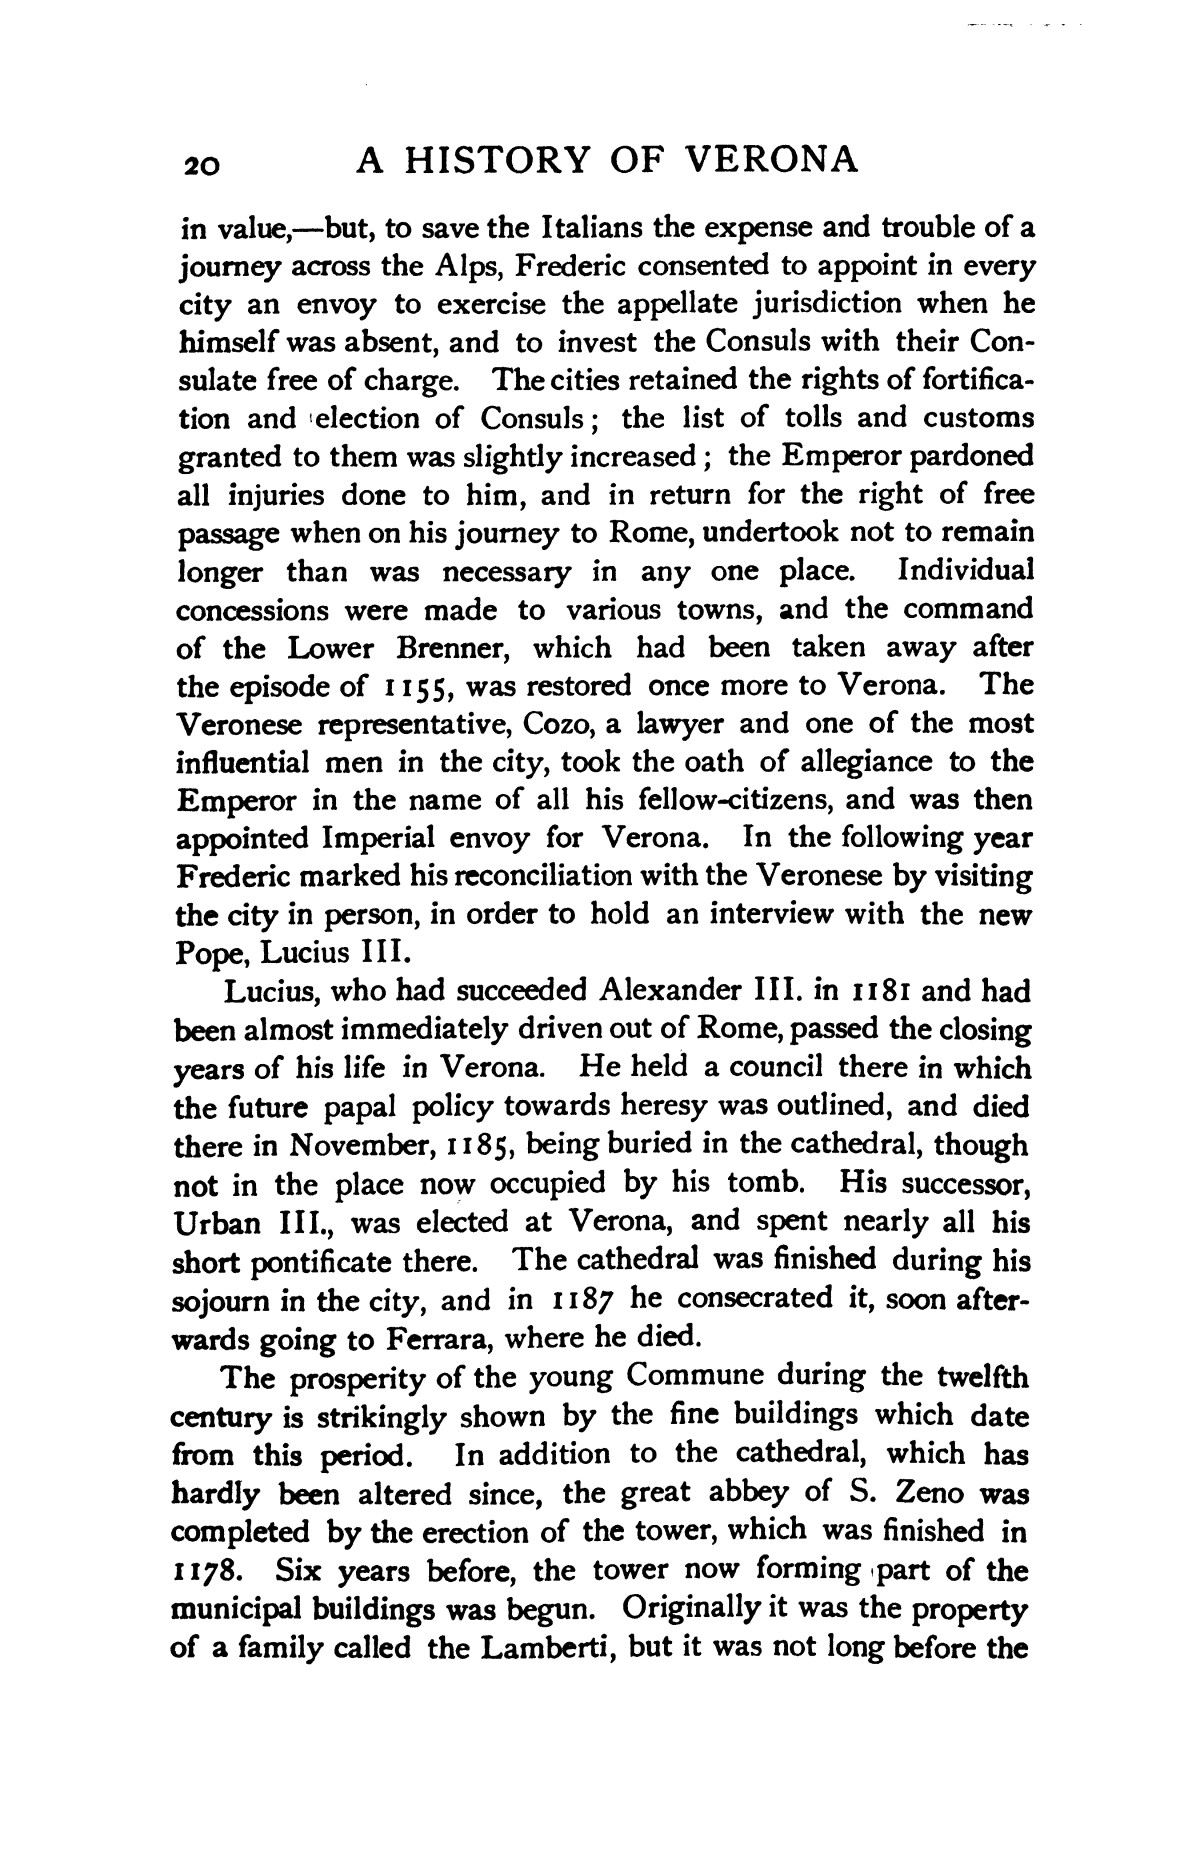 A history of Verona, by A. M. Allen.  Edited by Edward Armstrong, with twenty illustrations and three maps.                                                                                                      [Sequence #]: 36 of 493